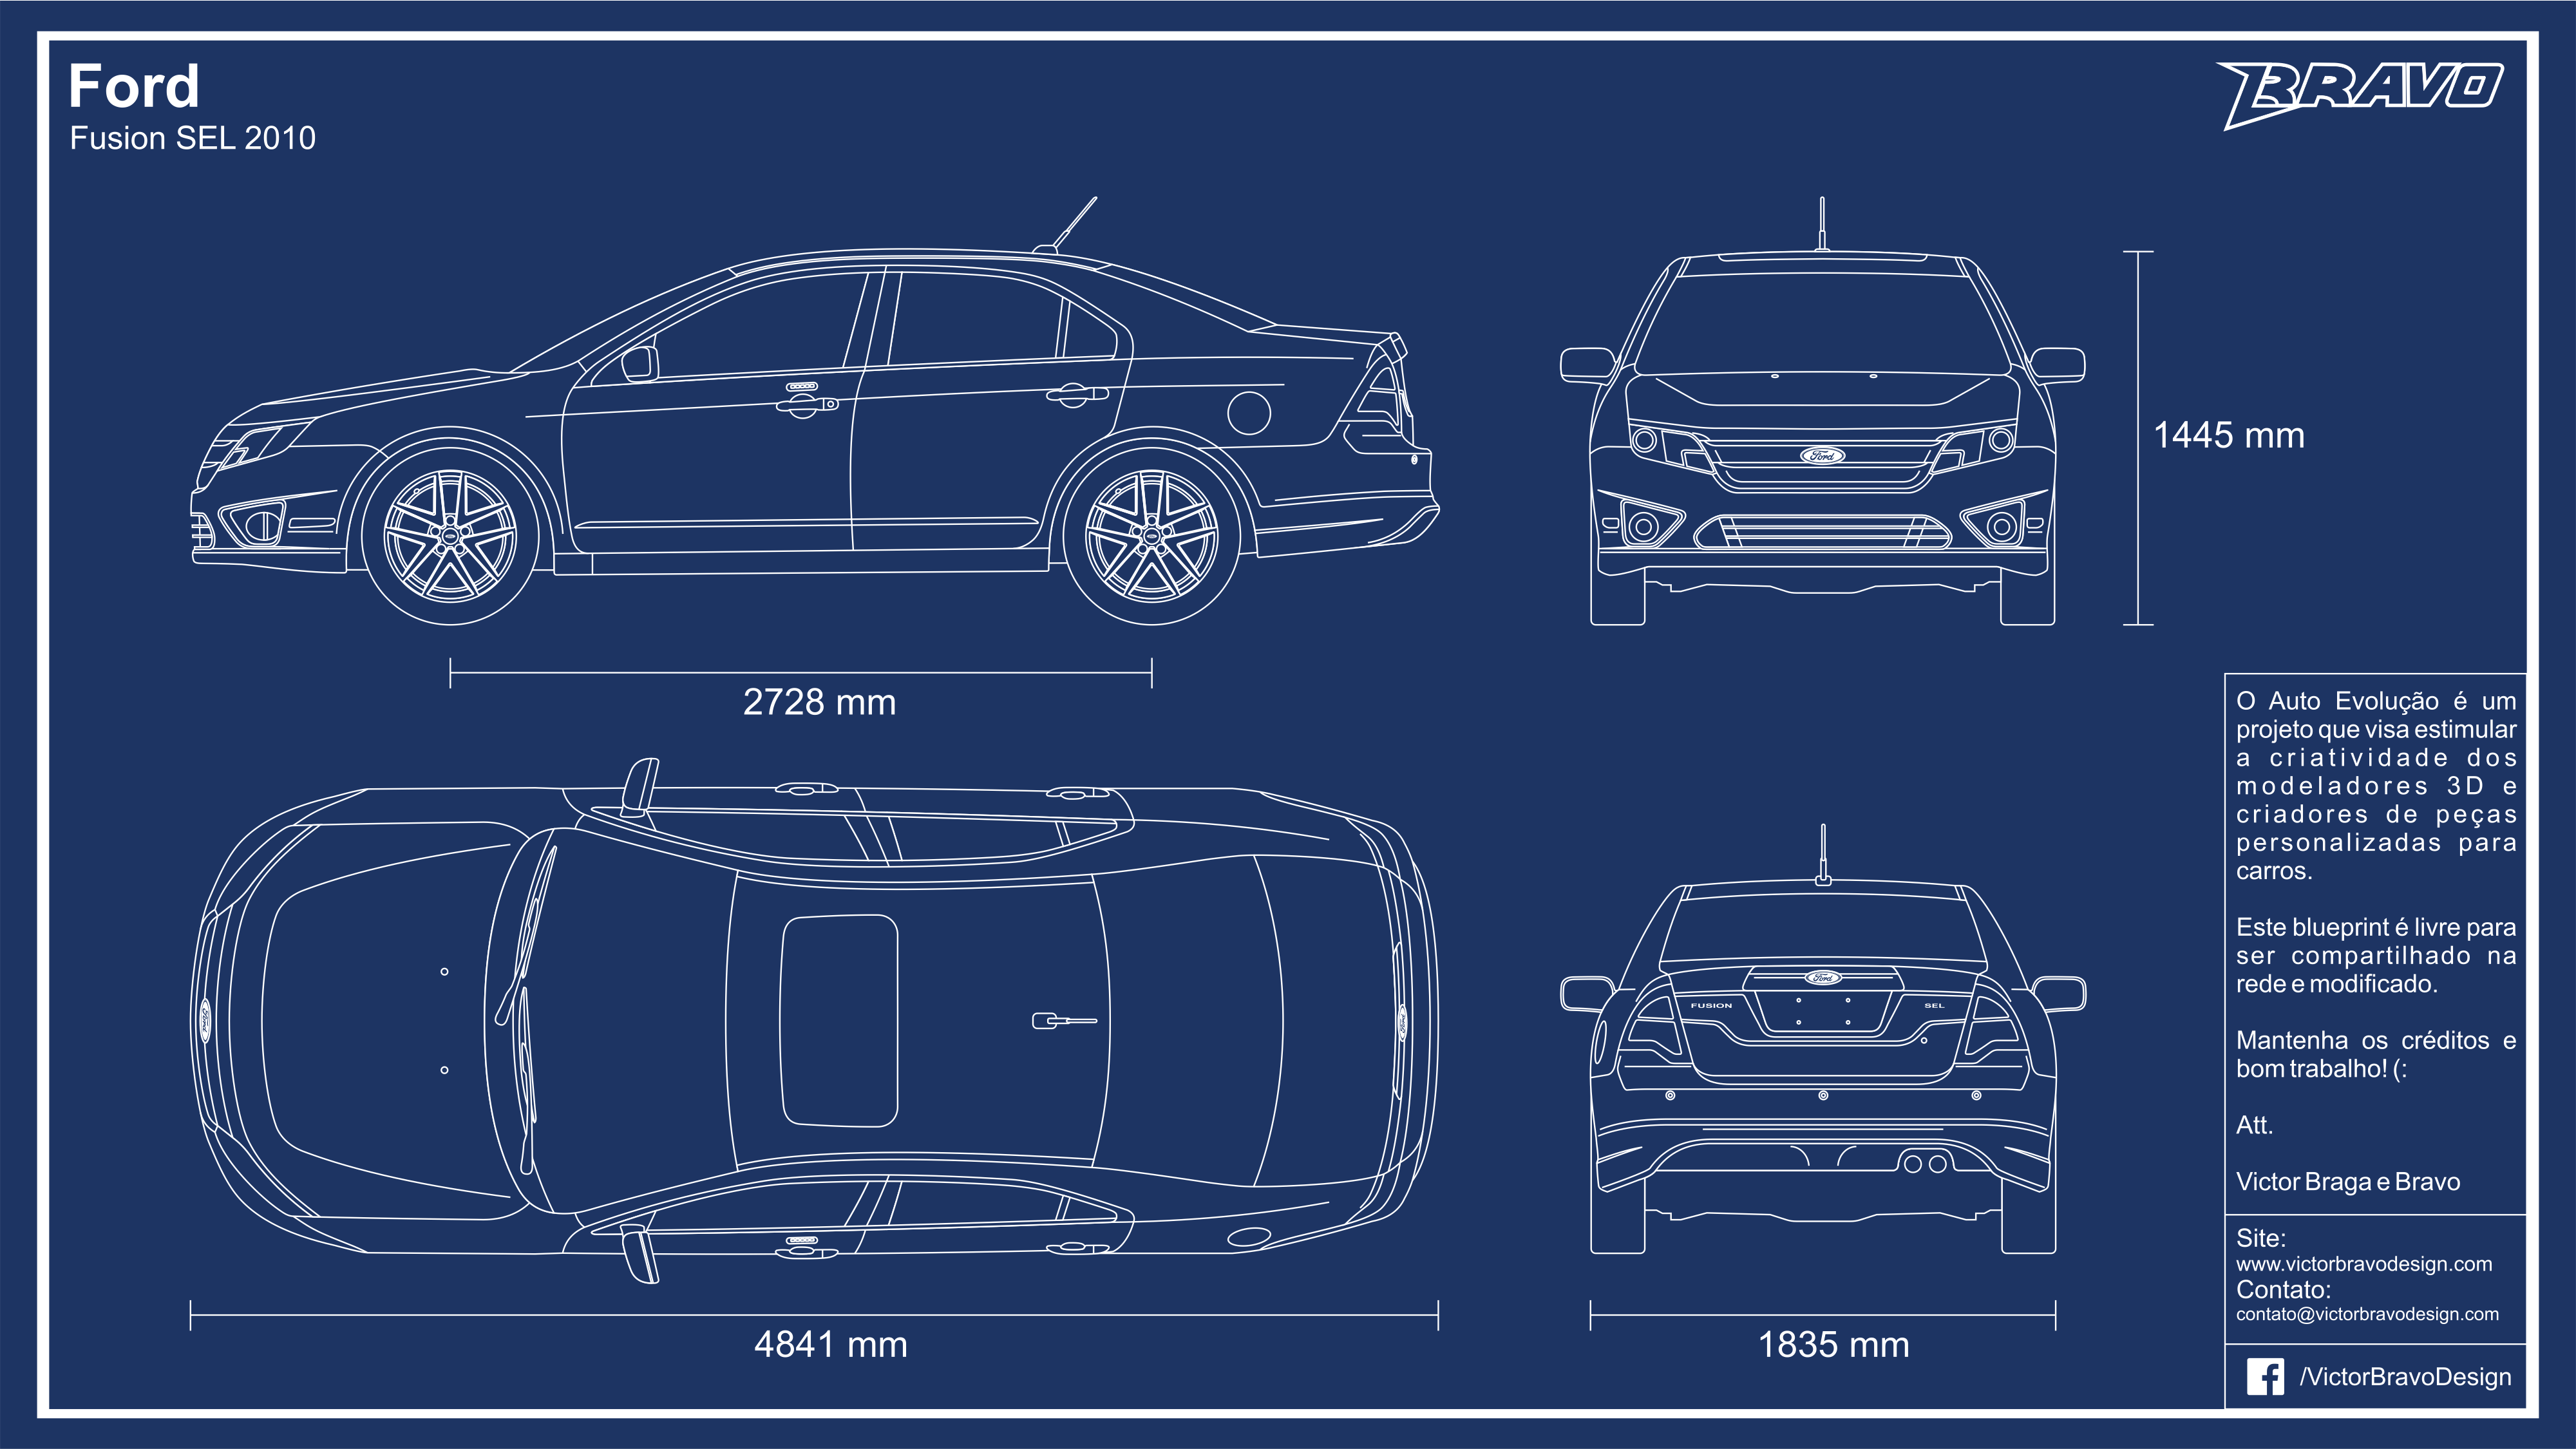 Blueprint ford fusion sel 2010 by victorbravodesign on deviantart victorbravodesign blueprint ford fusion sel 2010 by victorbravodesign malvernweather Images